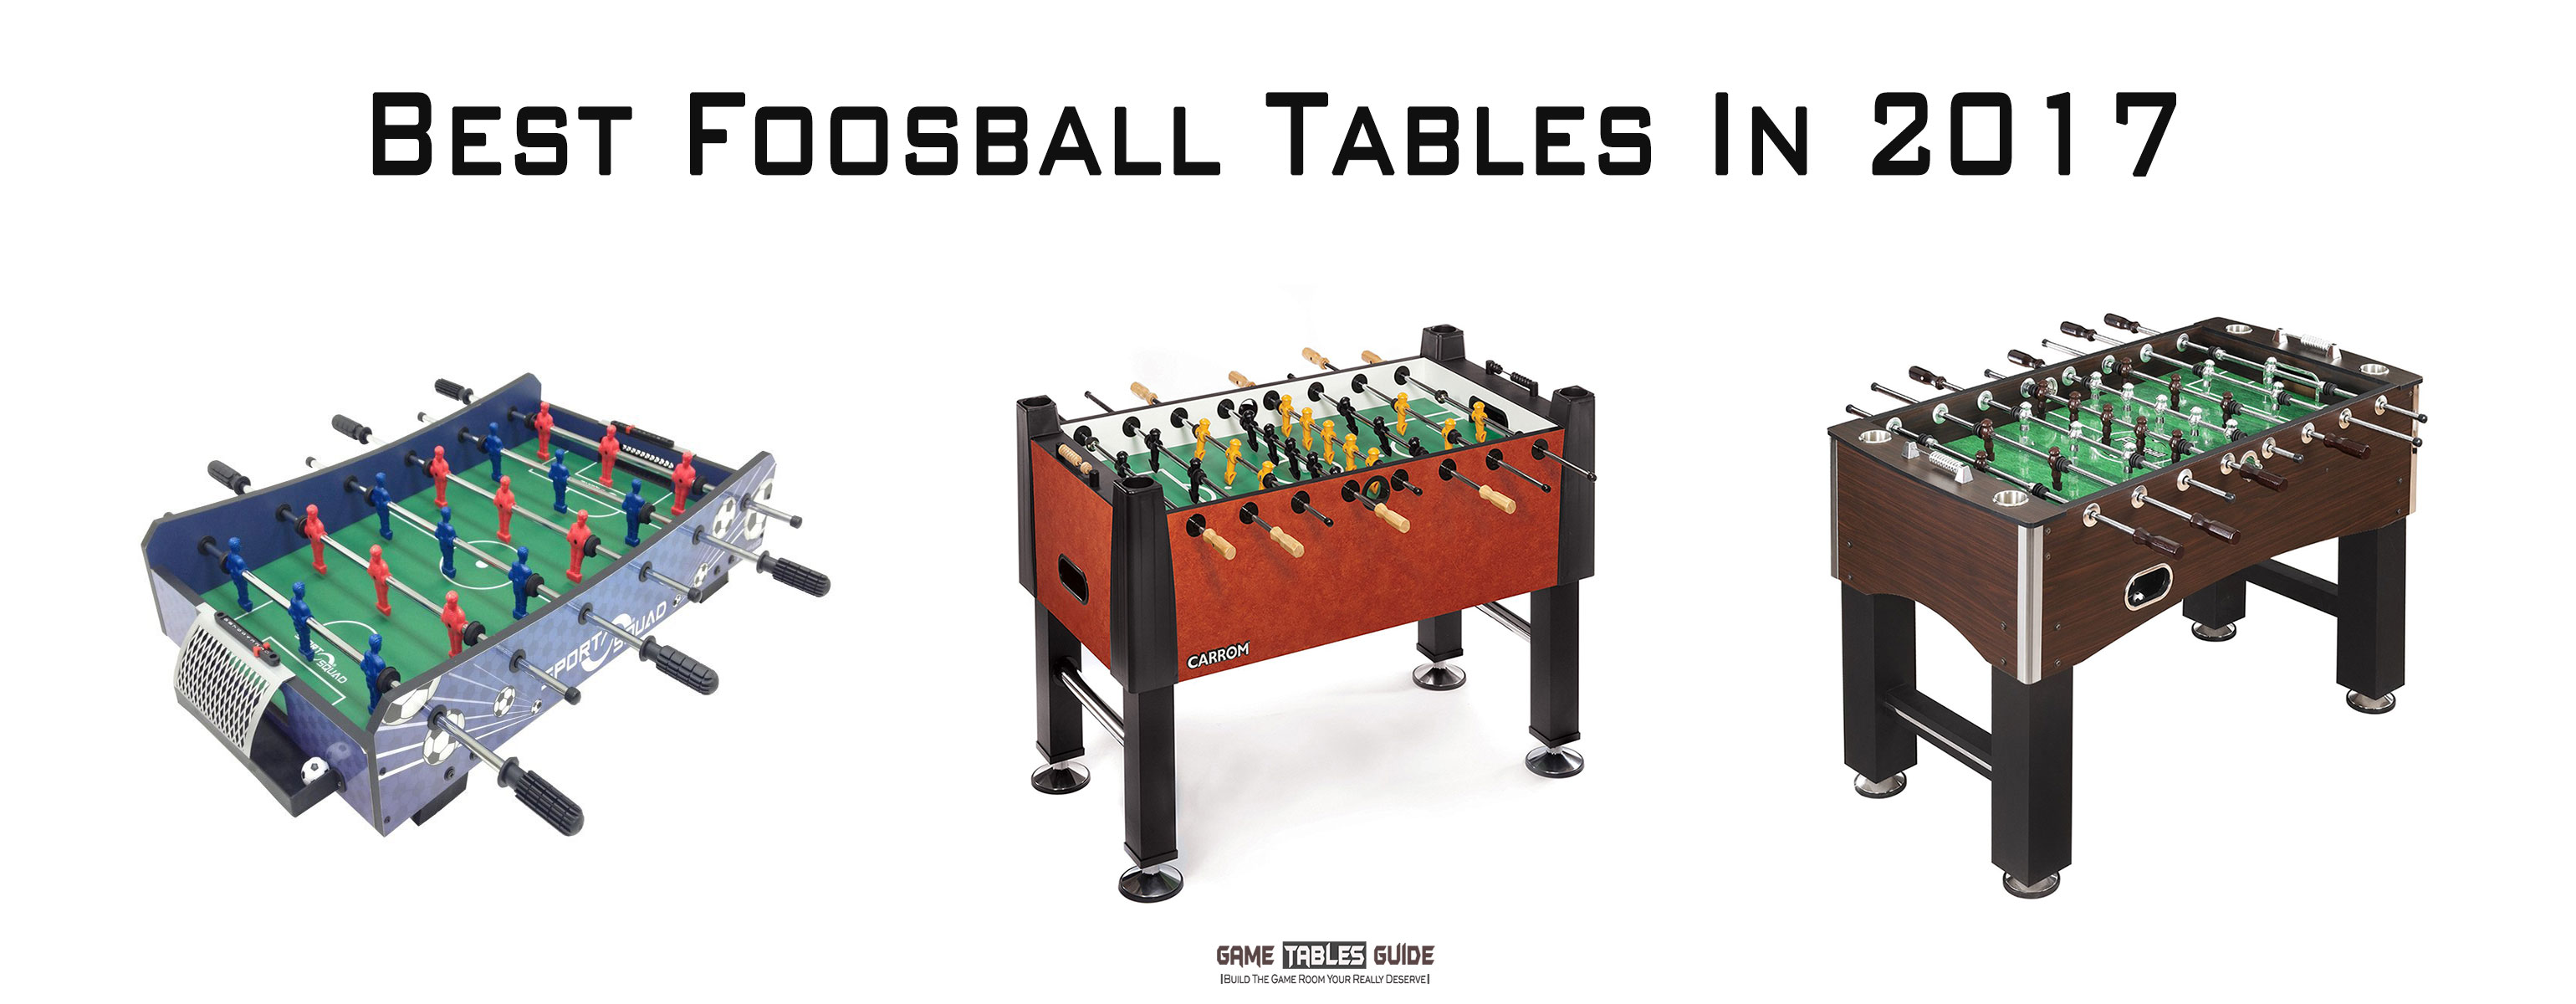 Best Foosball Tables In The Ultimate Buying Guide - How much does a foosball table cost